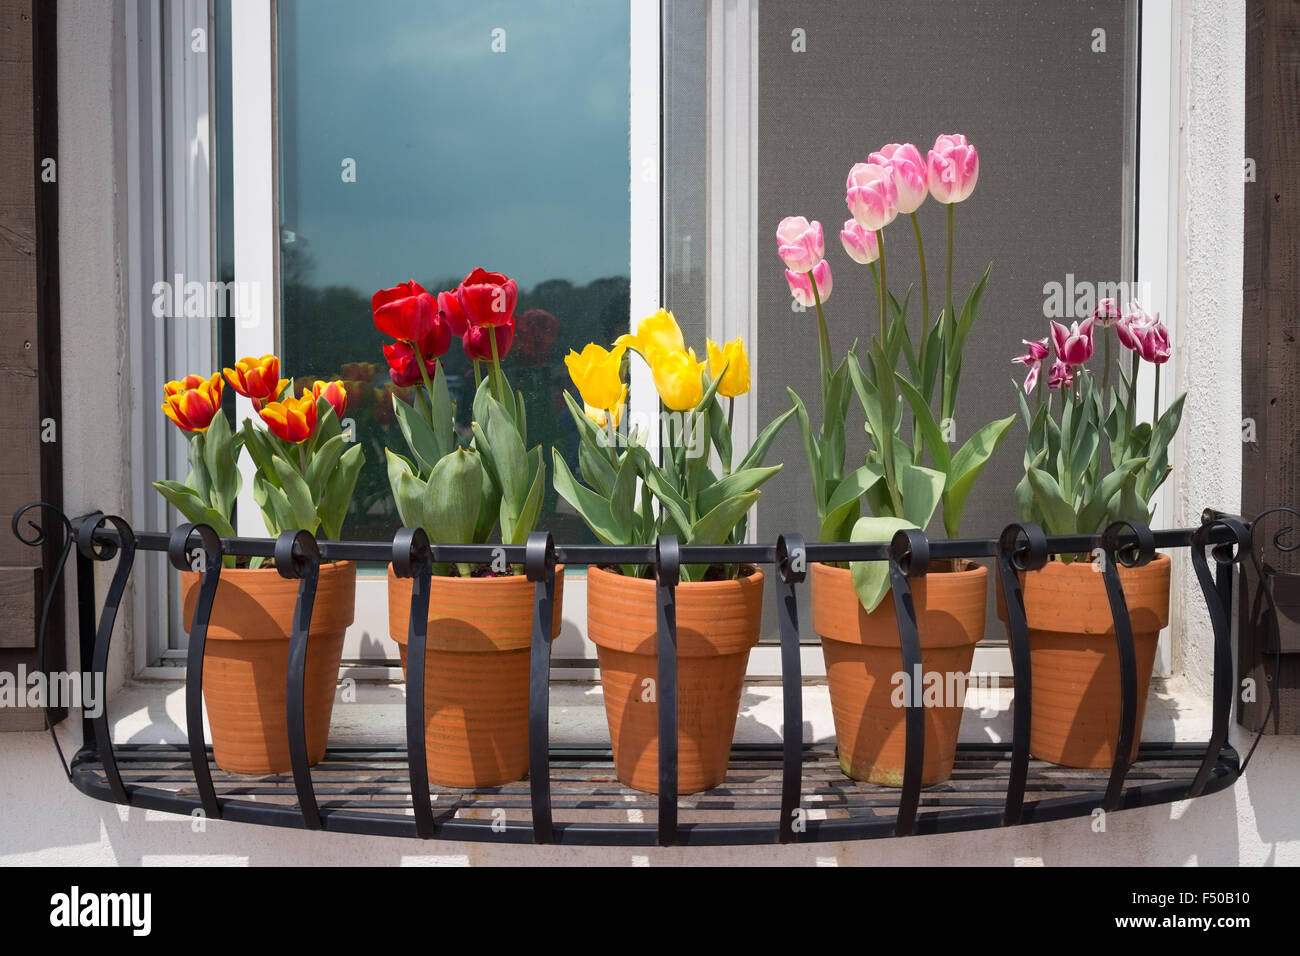 Pots of tulips sitting in a window box planter - Stock Image